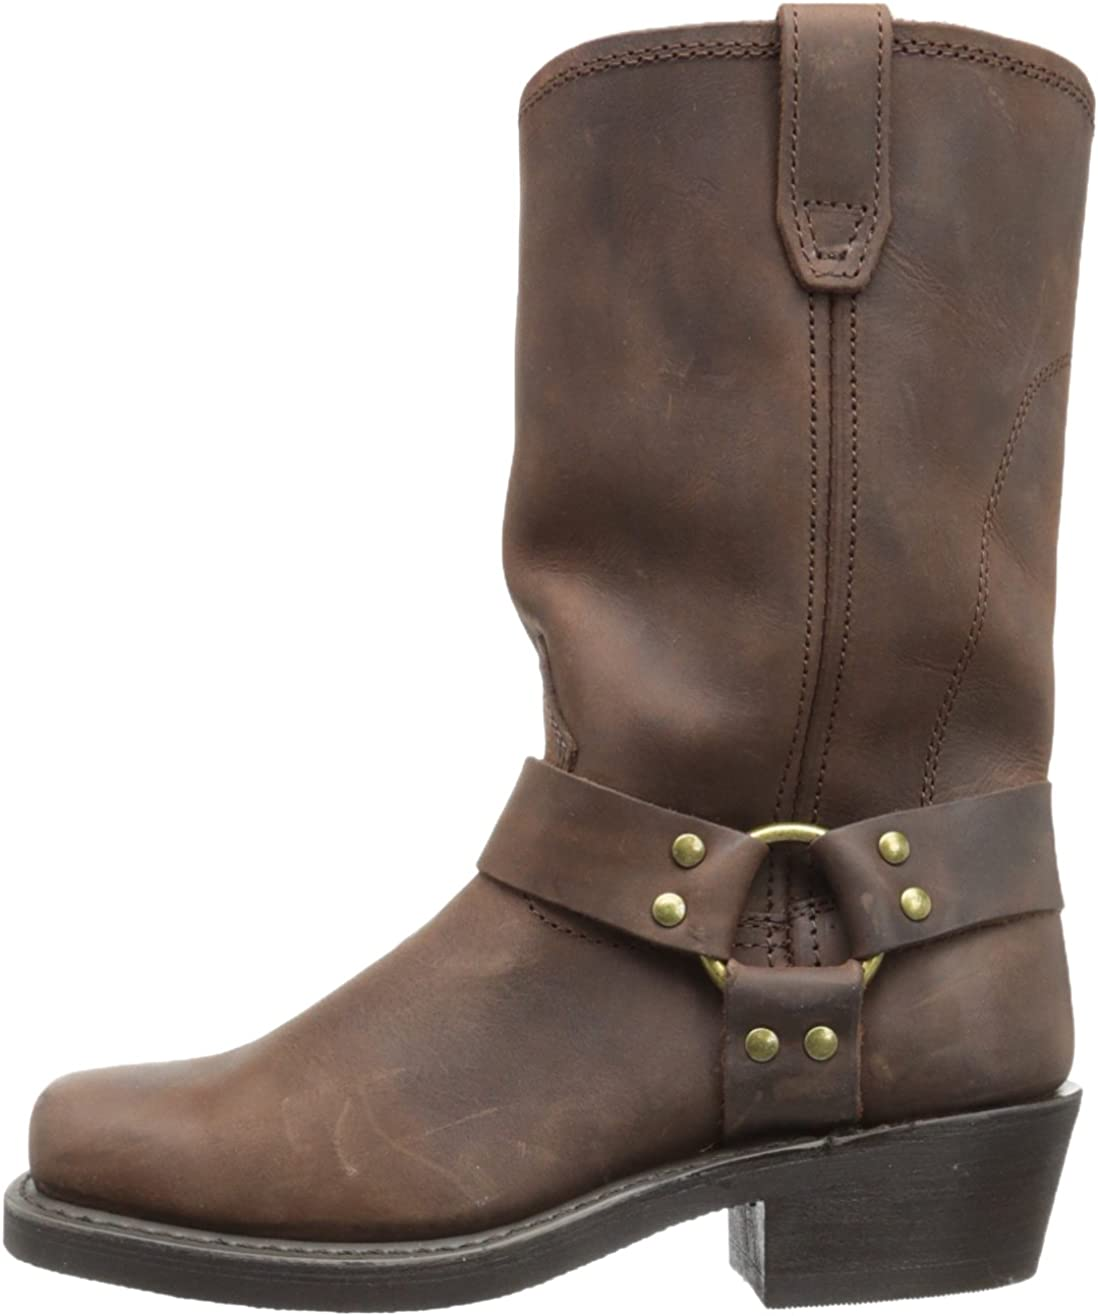 Dingo Boots womens Molly boots, Gaucho